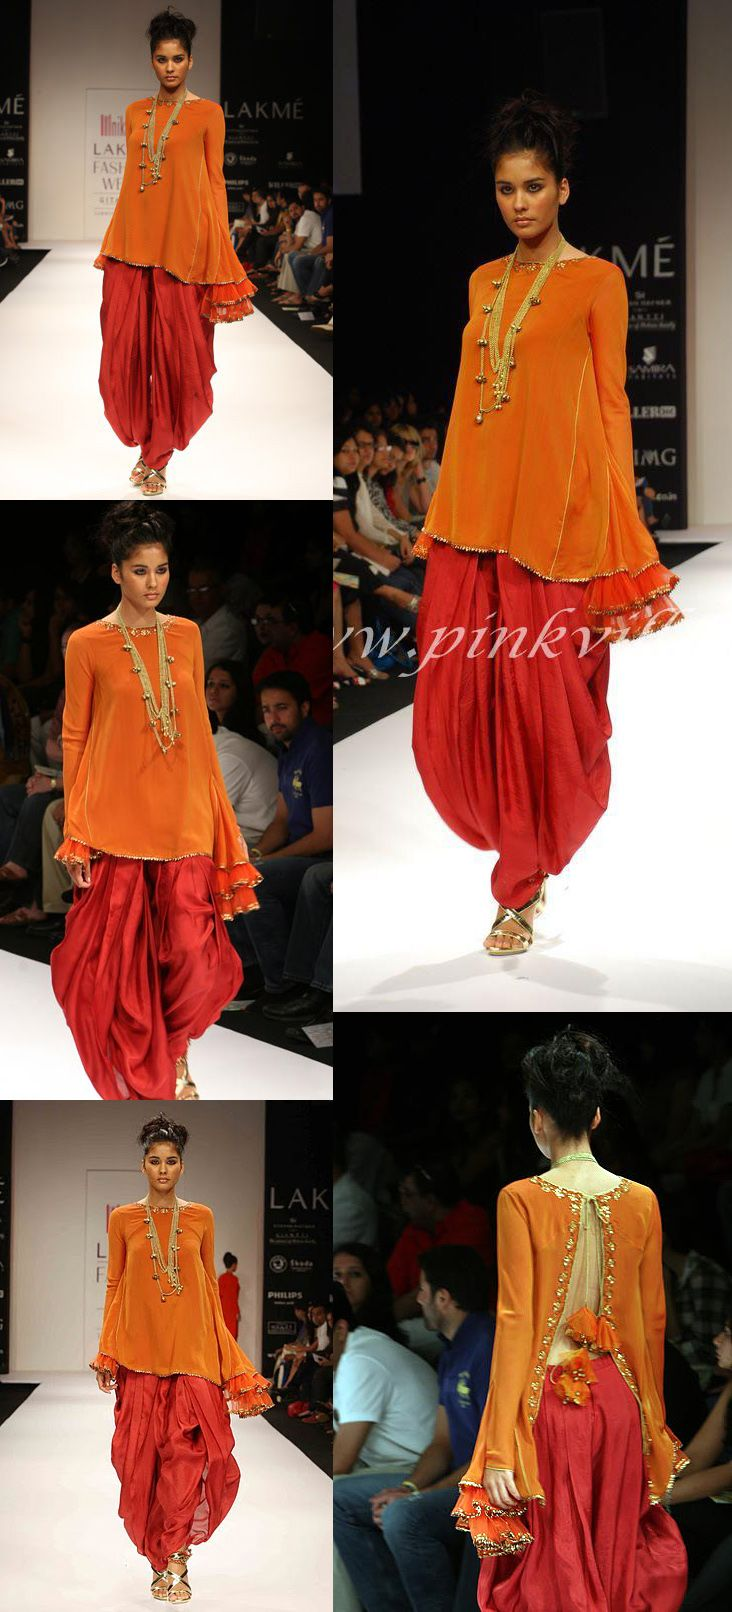 Nikasha Tawadey on Day 1 of the Lakme Fashion Week in Mumbai on Friday, March 5, 2010.